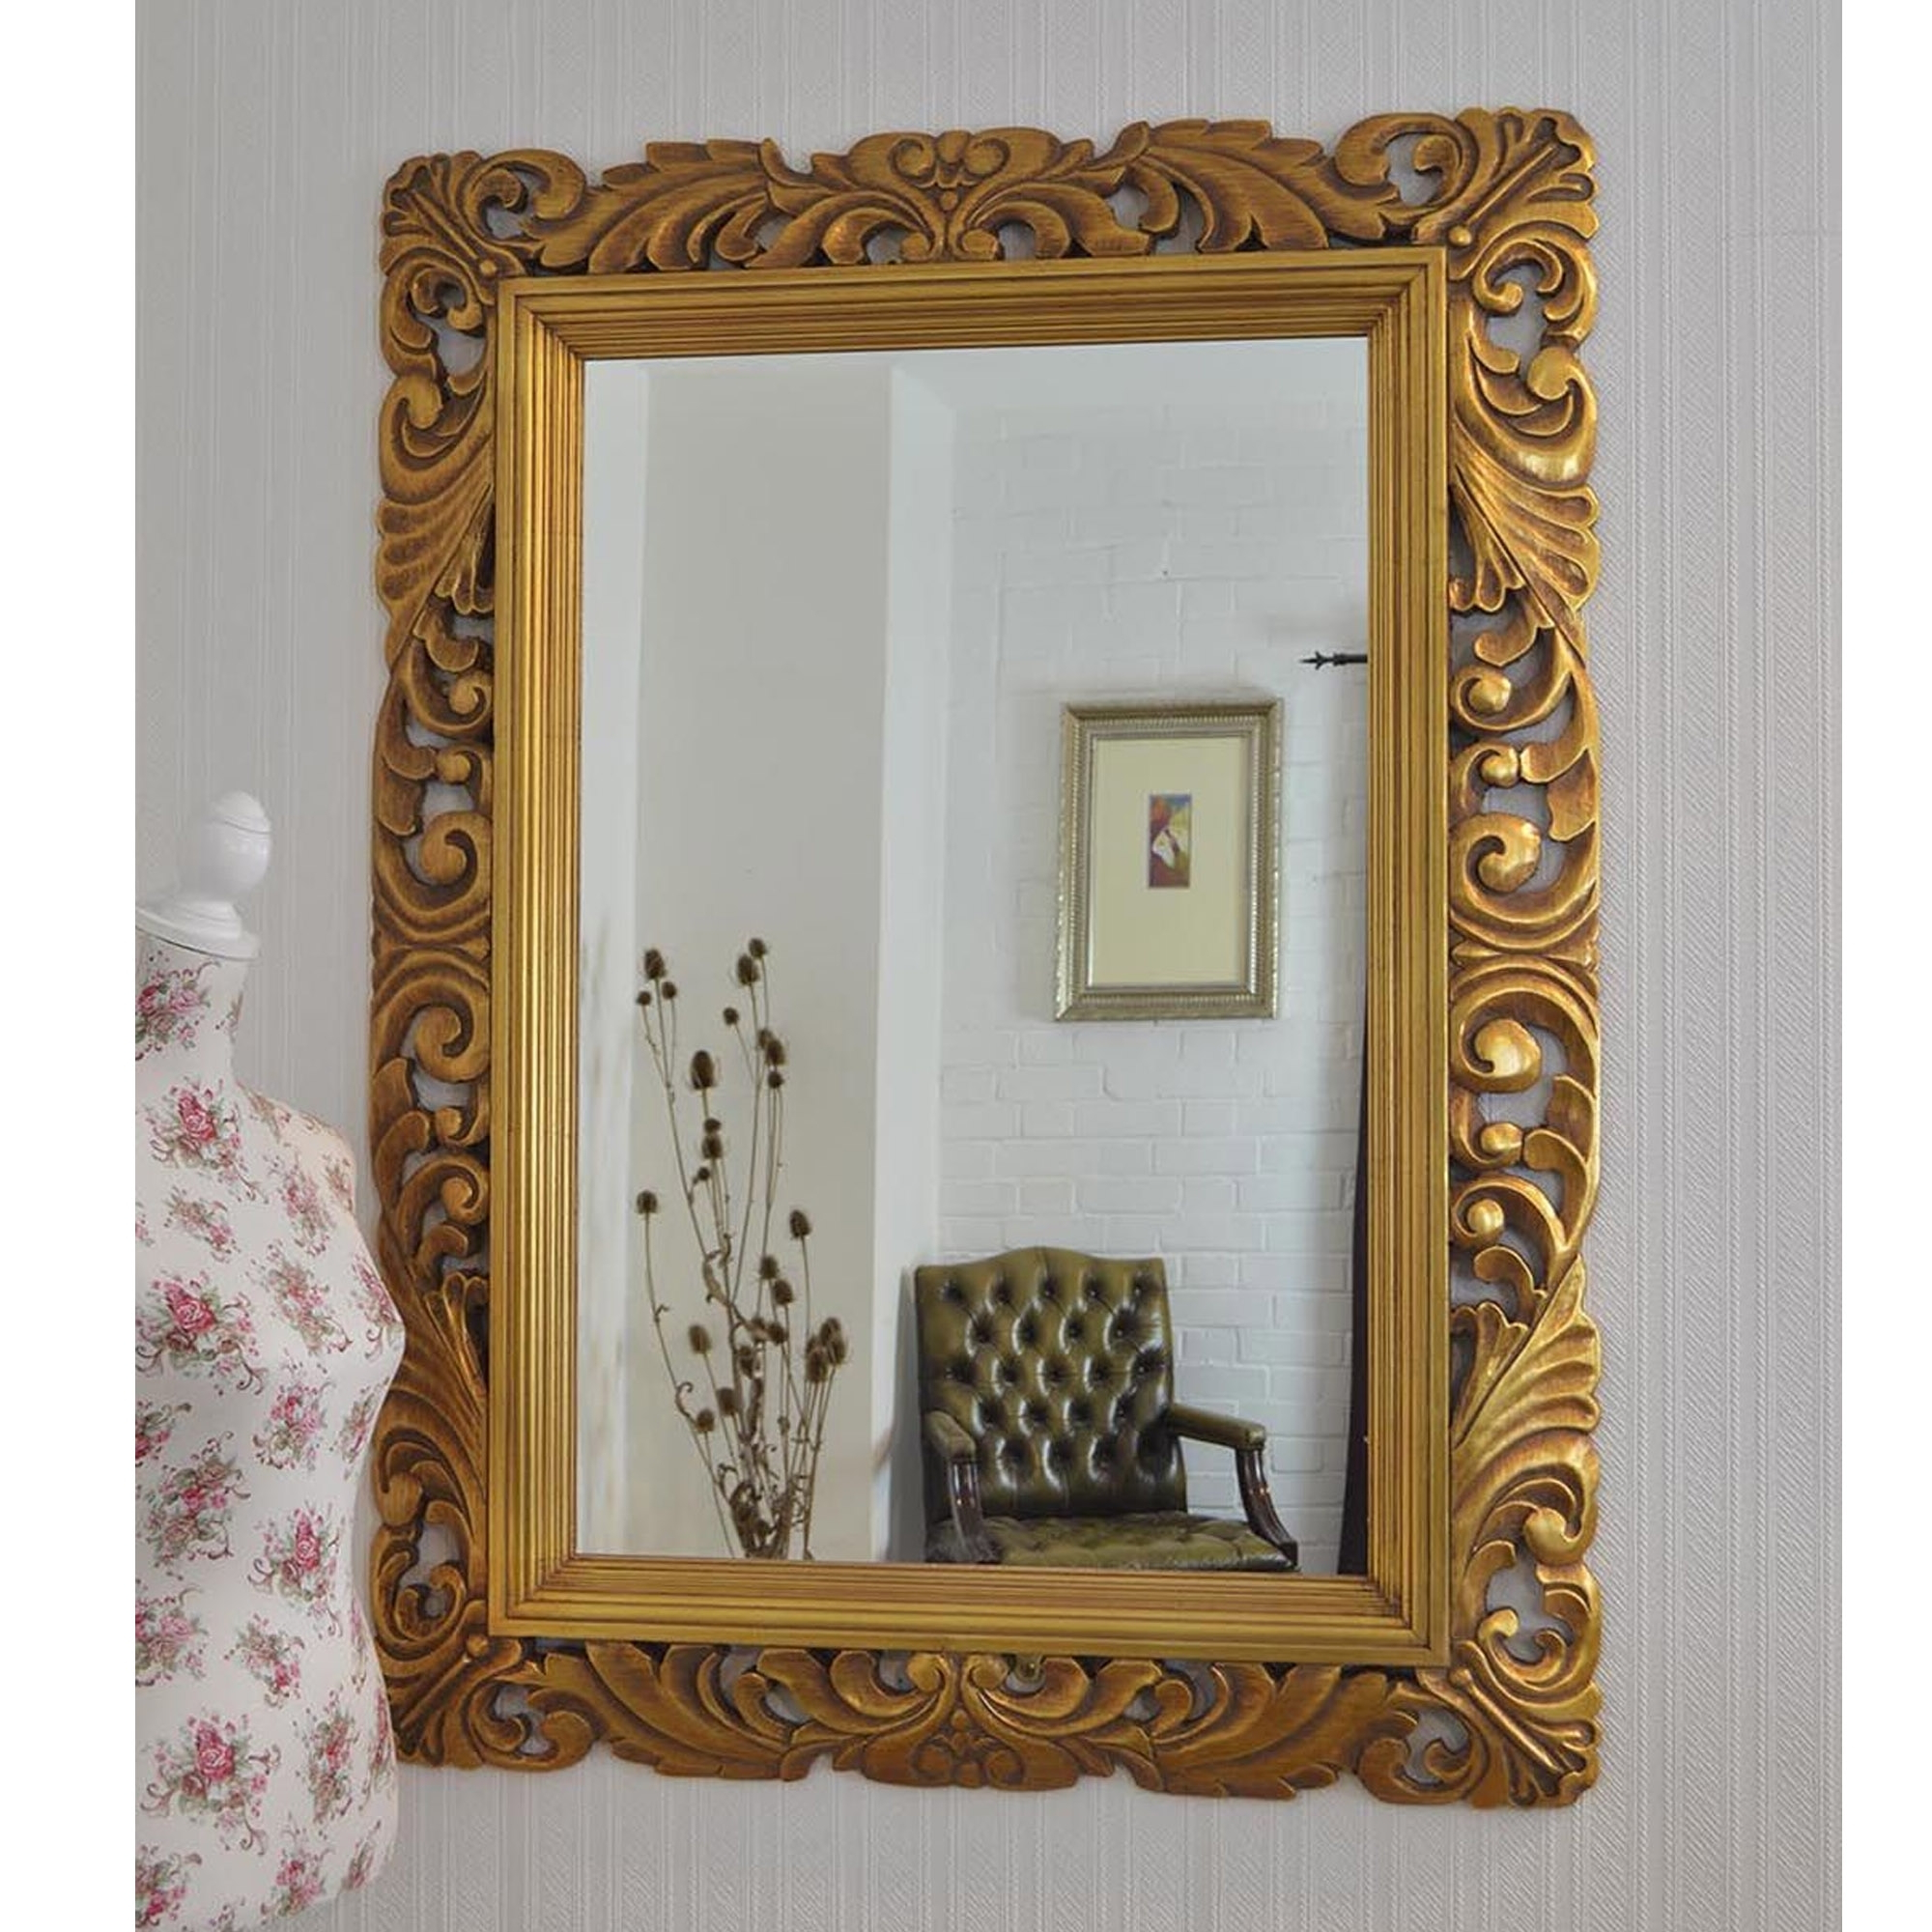 Gold Wall Mirrors Within Current Ornate Framed Gold Antique French Style Wall Mirror (View 10 of 20)